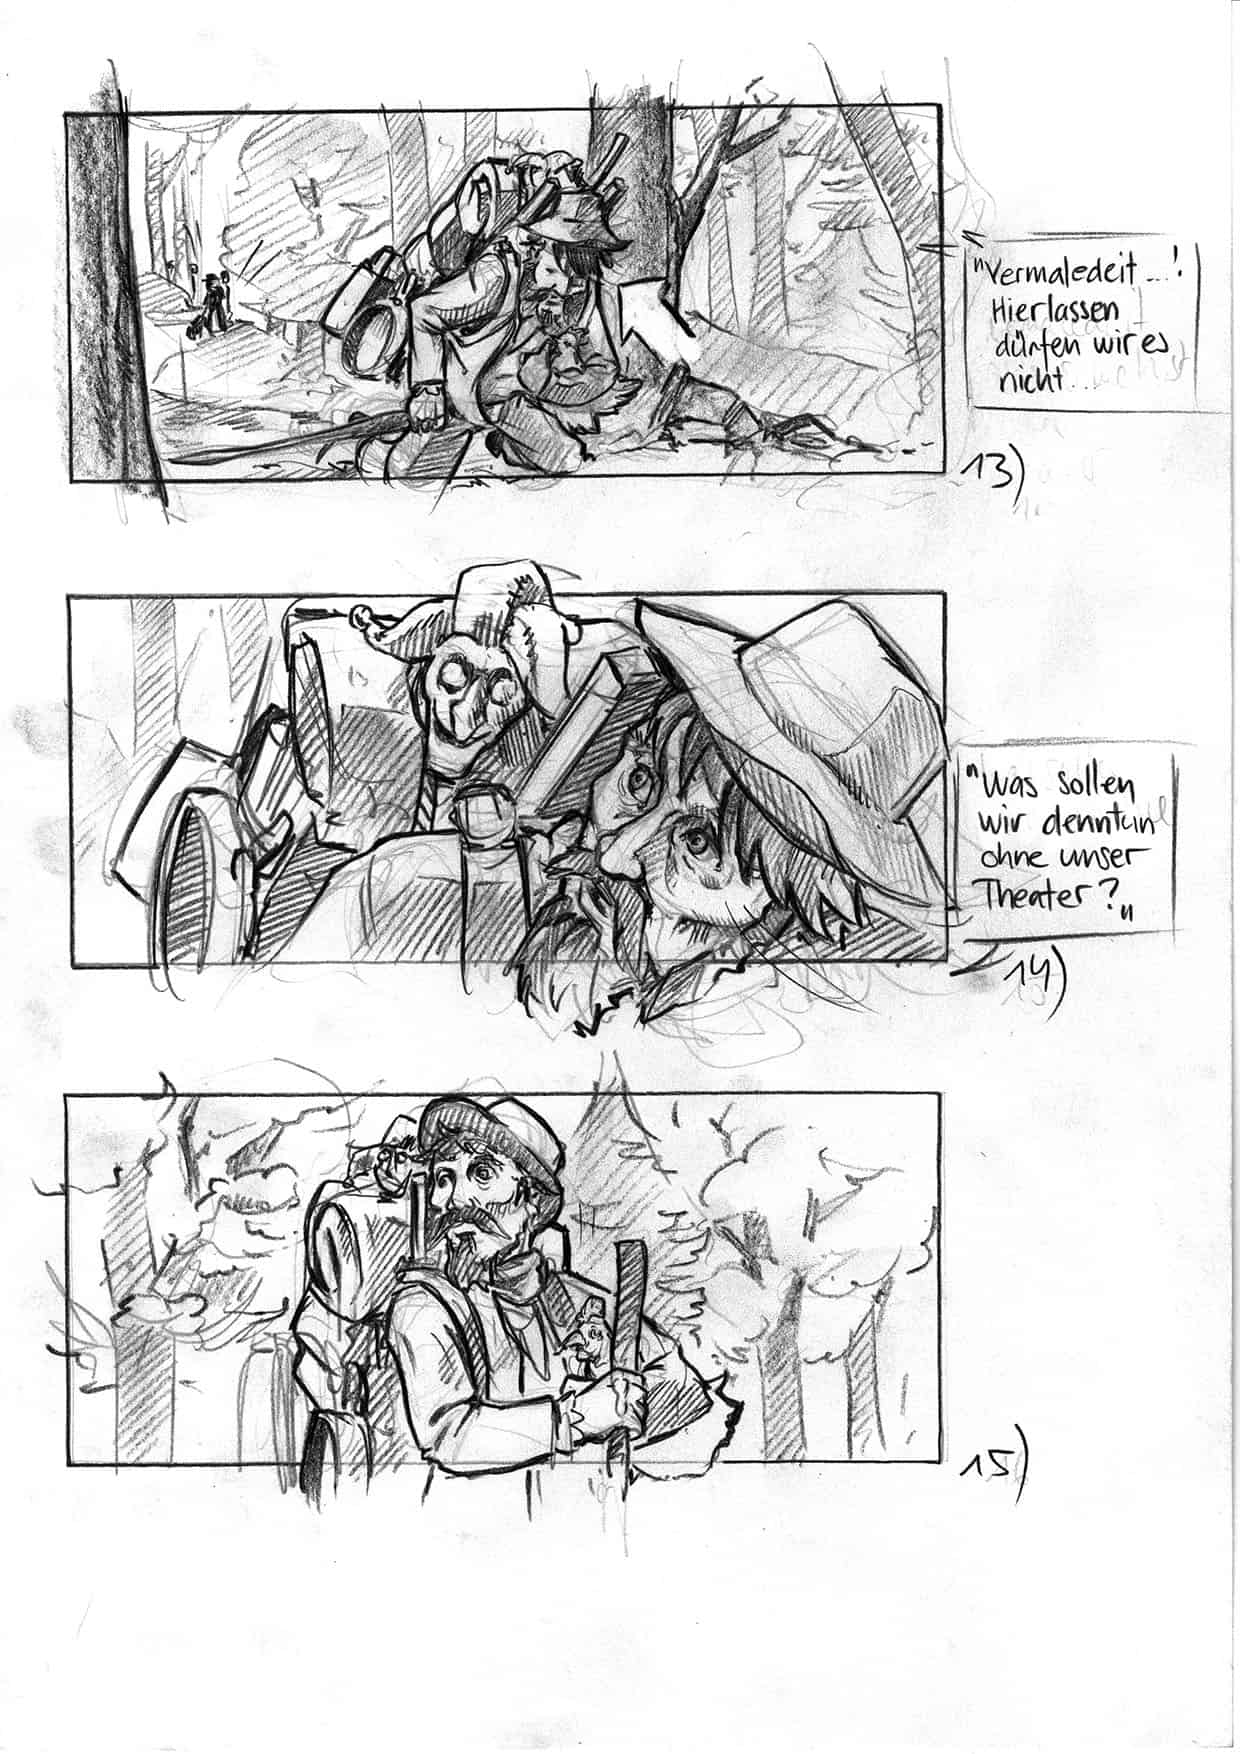 Storyboards And Visualizations For Movies